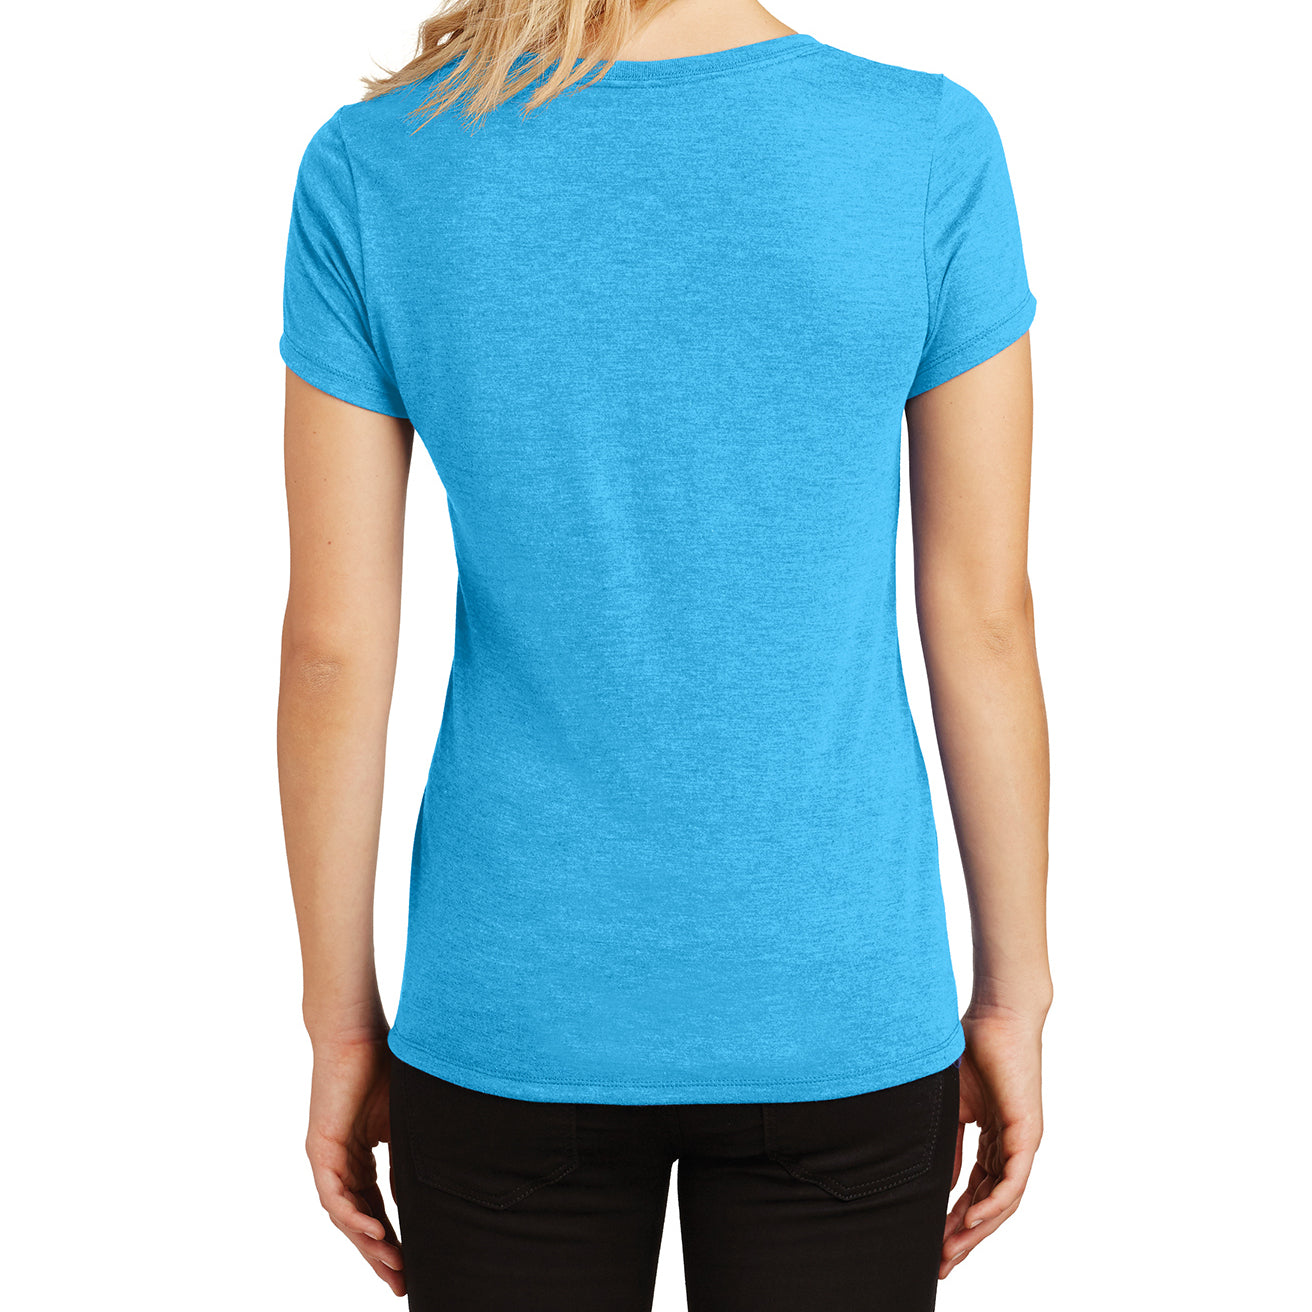 Women's Perfect Tri V-Neck Tee - Turquoise Frost - Back